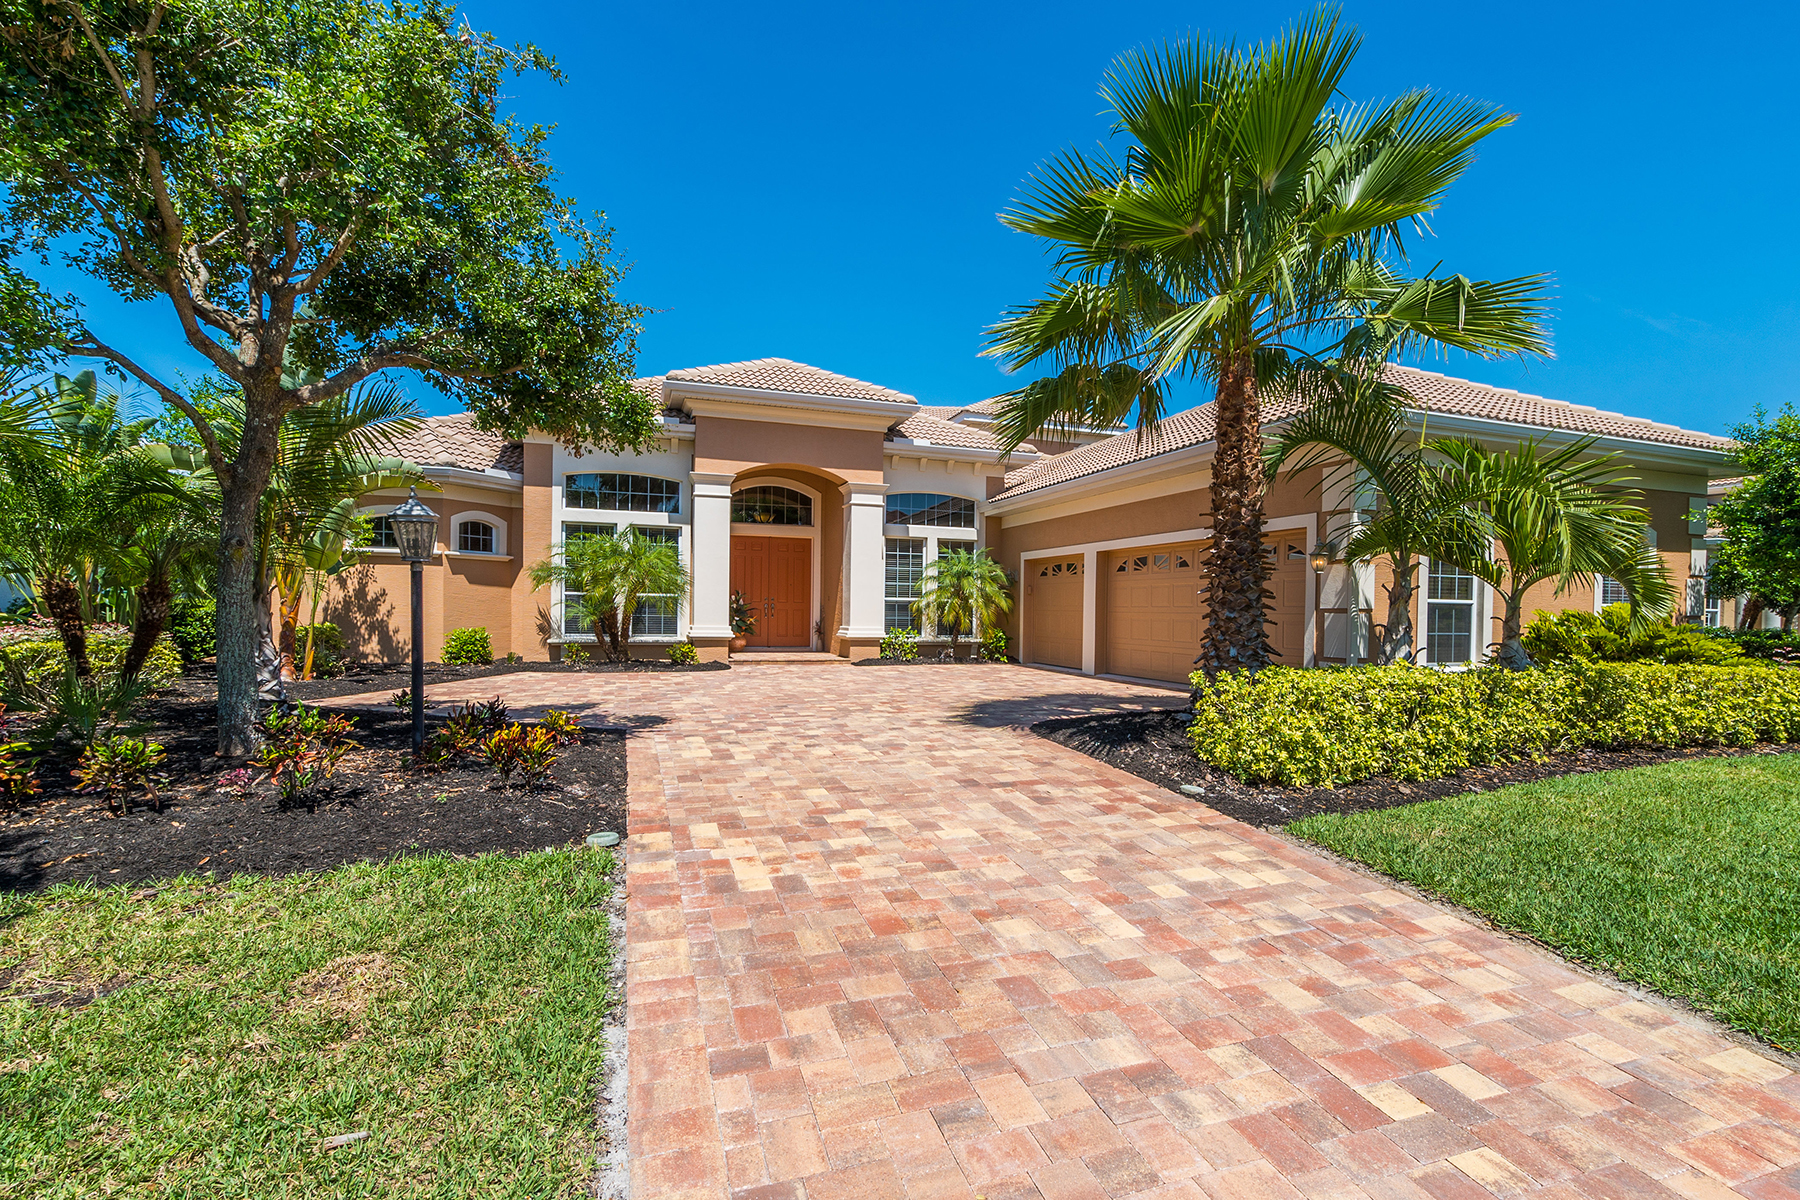 Single Family Home for Sale at LAKEWOOD RANCH COUNTRY CLUB 7524 Rigby Ct Lakewood Ranch, Florida, 34202 United States